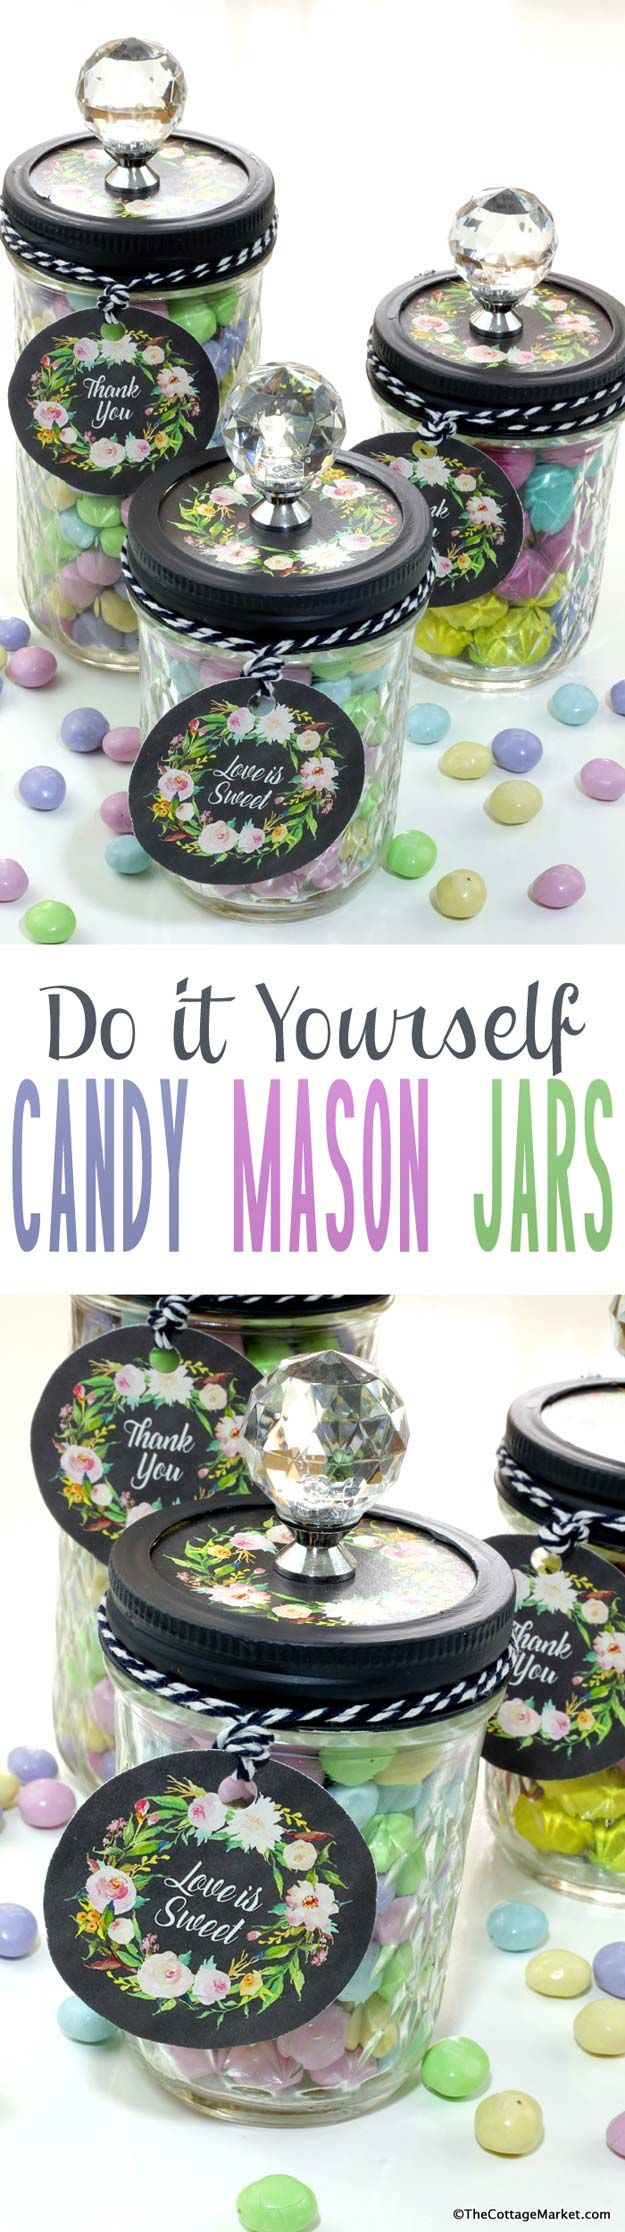 541 best images about painting glass on pinterest rit for Cute mason jar christmas gift ideas